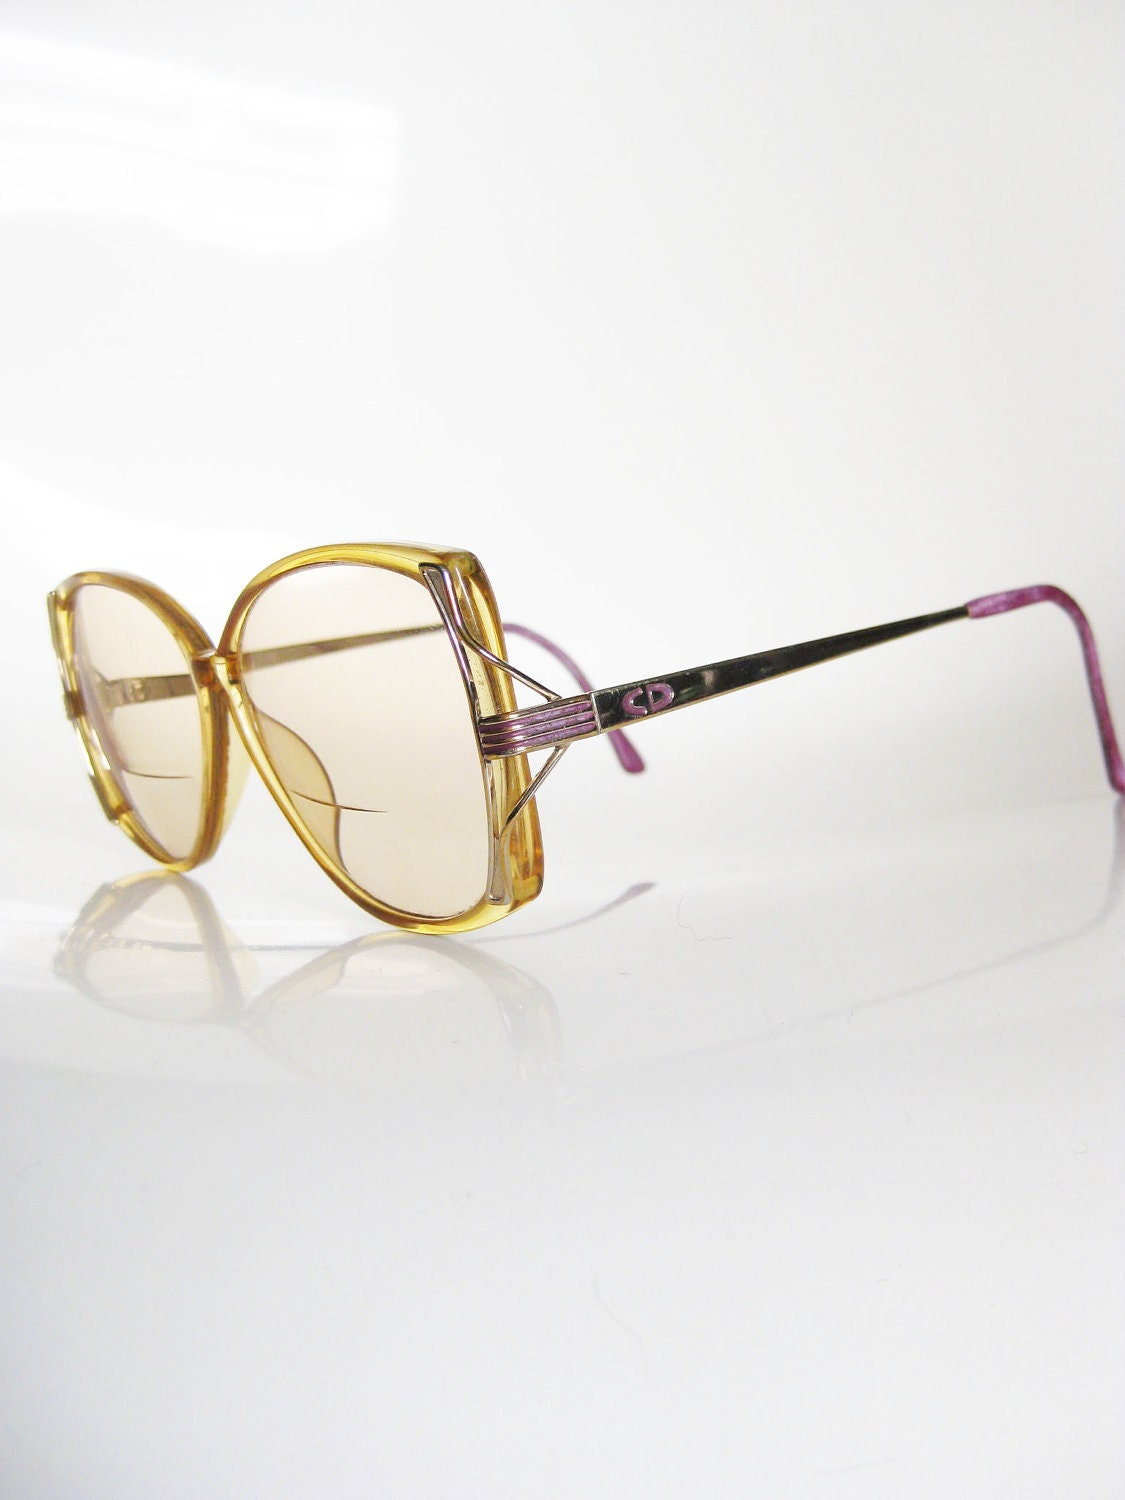 Vintage DIOR Yellow OVERSIZED 1970s Eyeglasses by ...